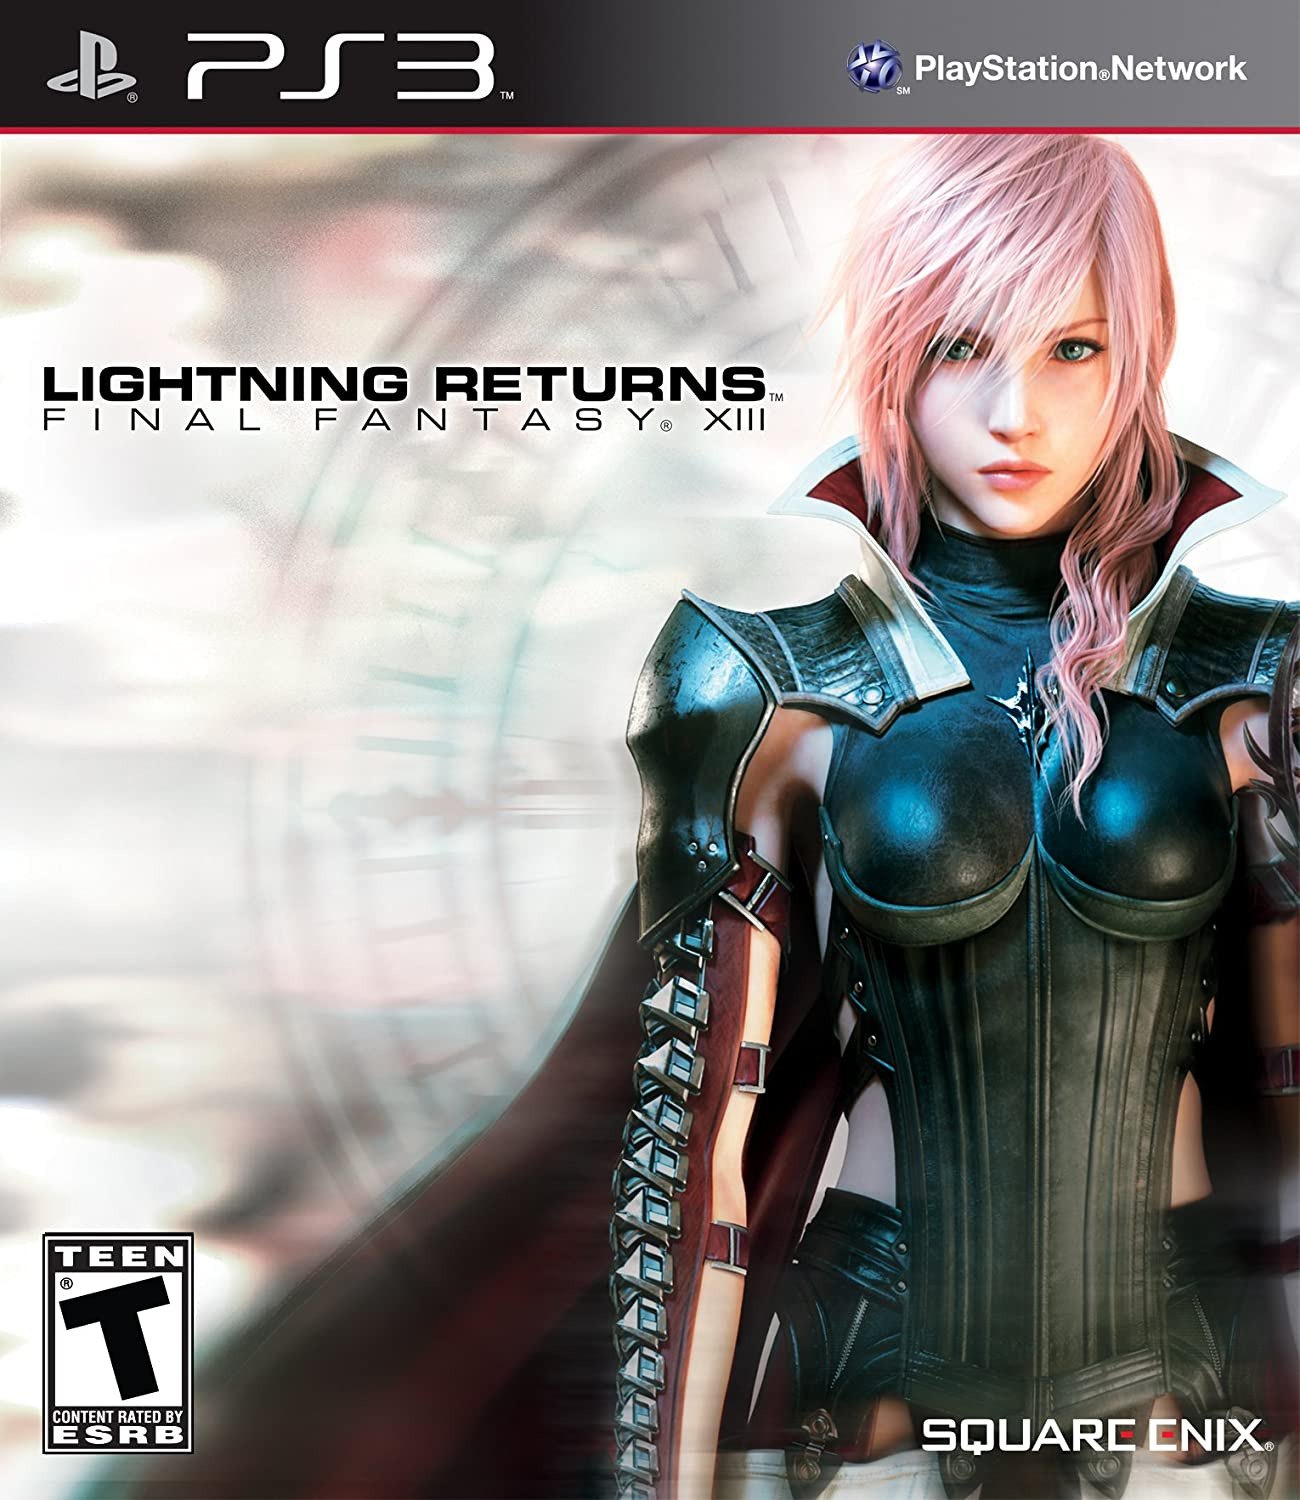 Amazon lightning returns final fantasy xiii playstation 3 amazon lightning returns final fantasy xiii playstation 3 square enix llc video games voltagebd Images